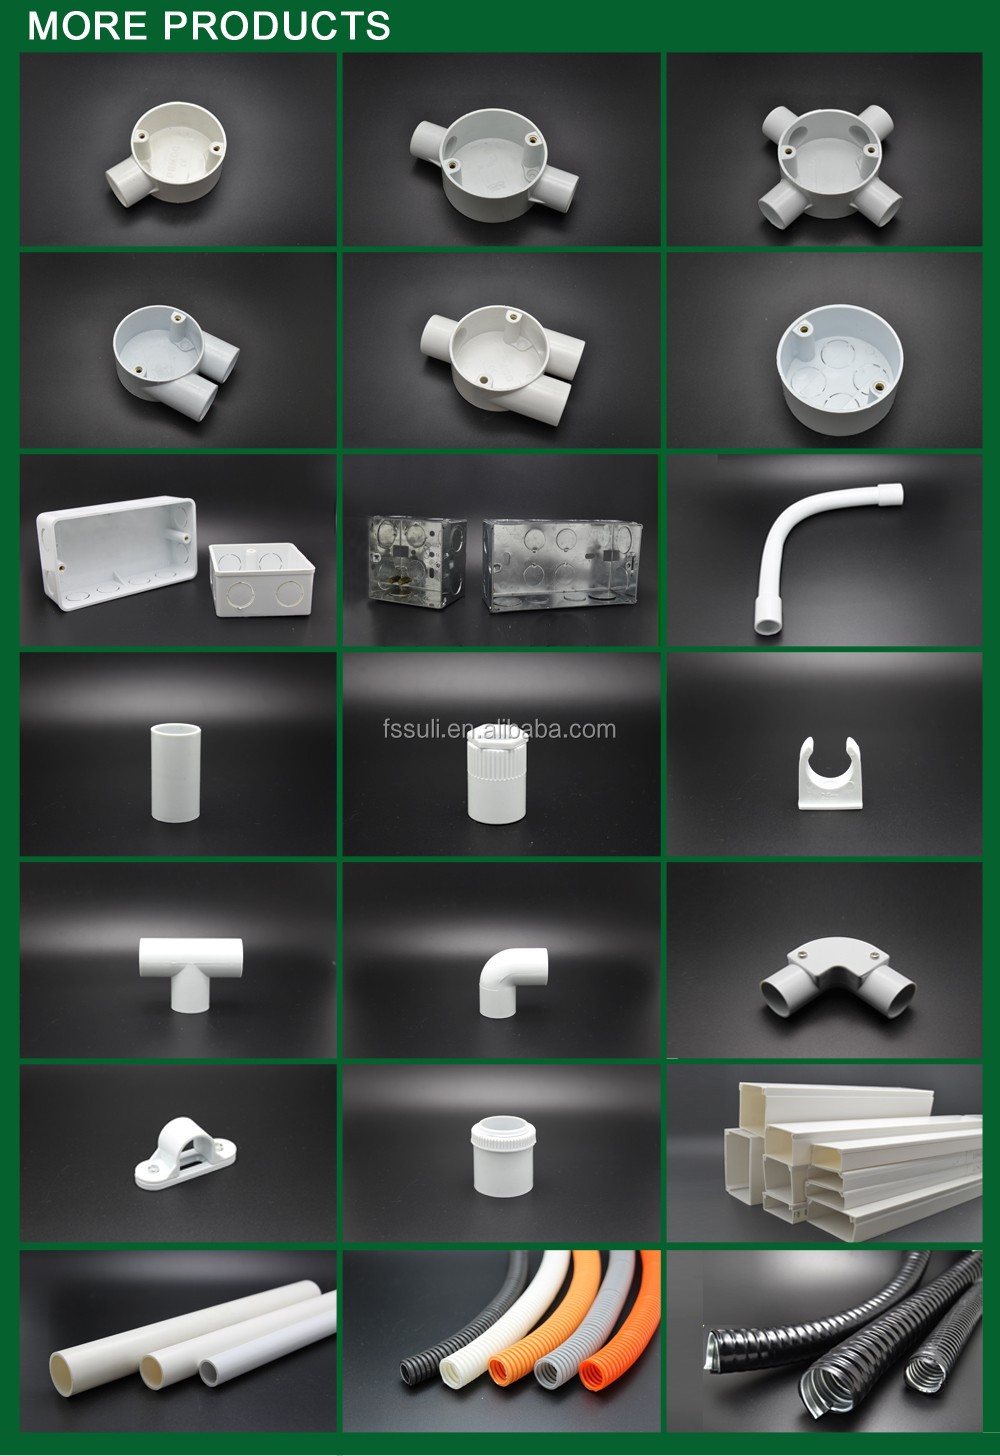 Wiring Accessories 32mm PVC Bend Pipeelectrical Pvc Pipe Sizesplastic Electrical Conduit